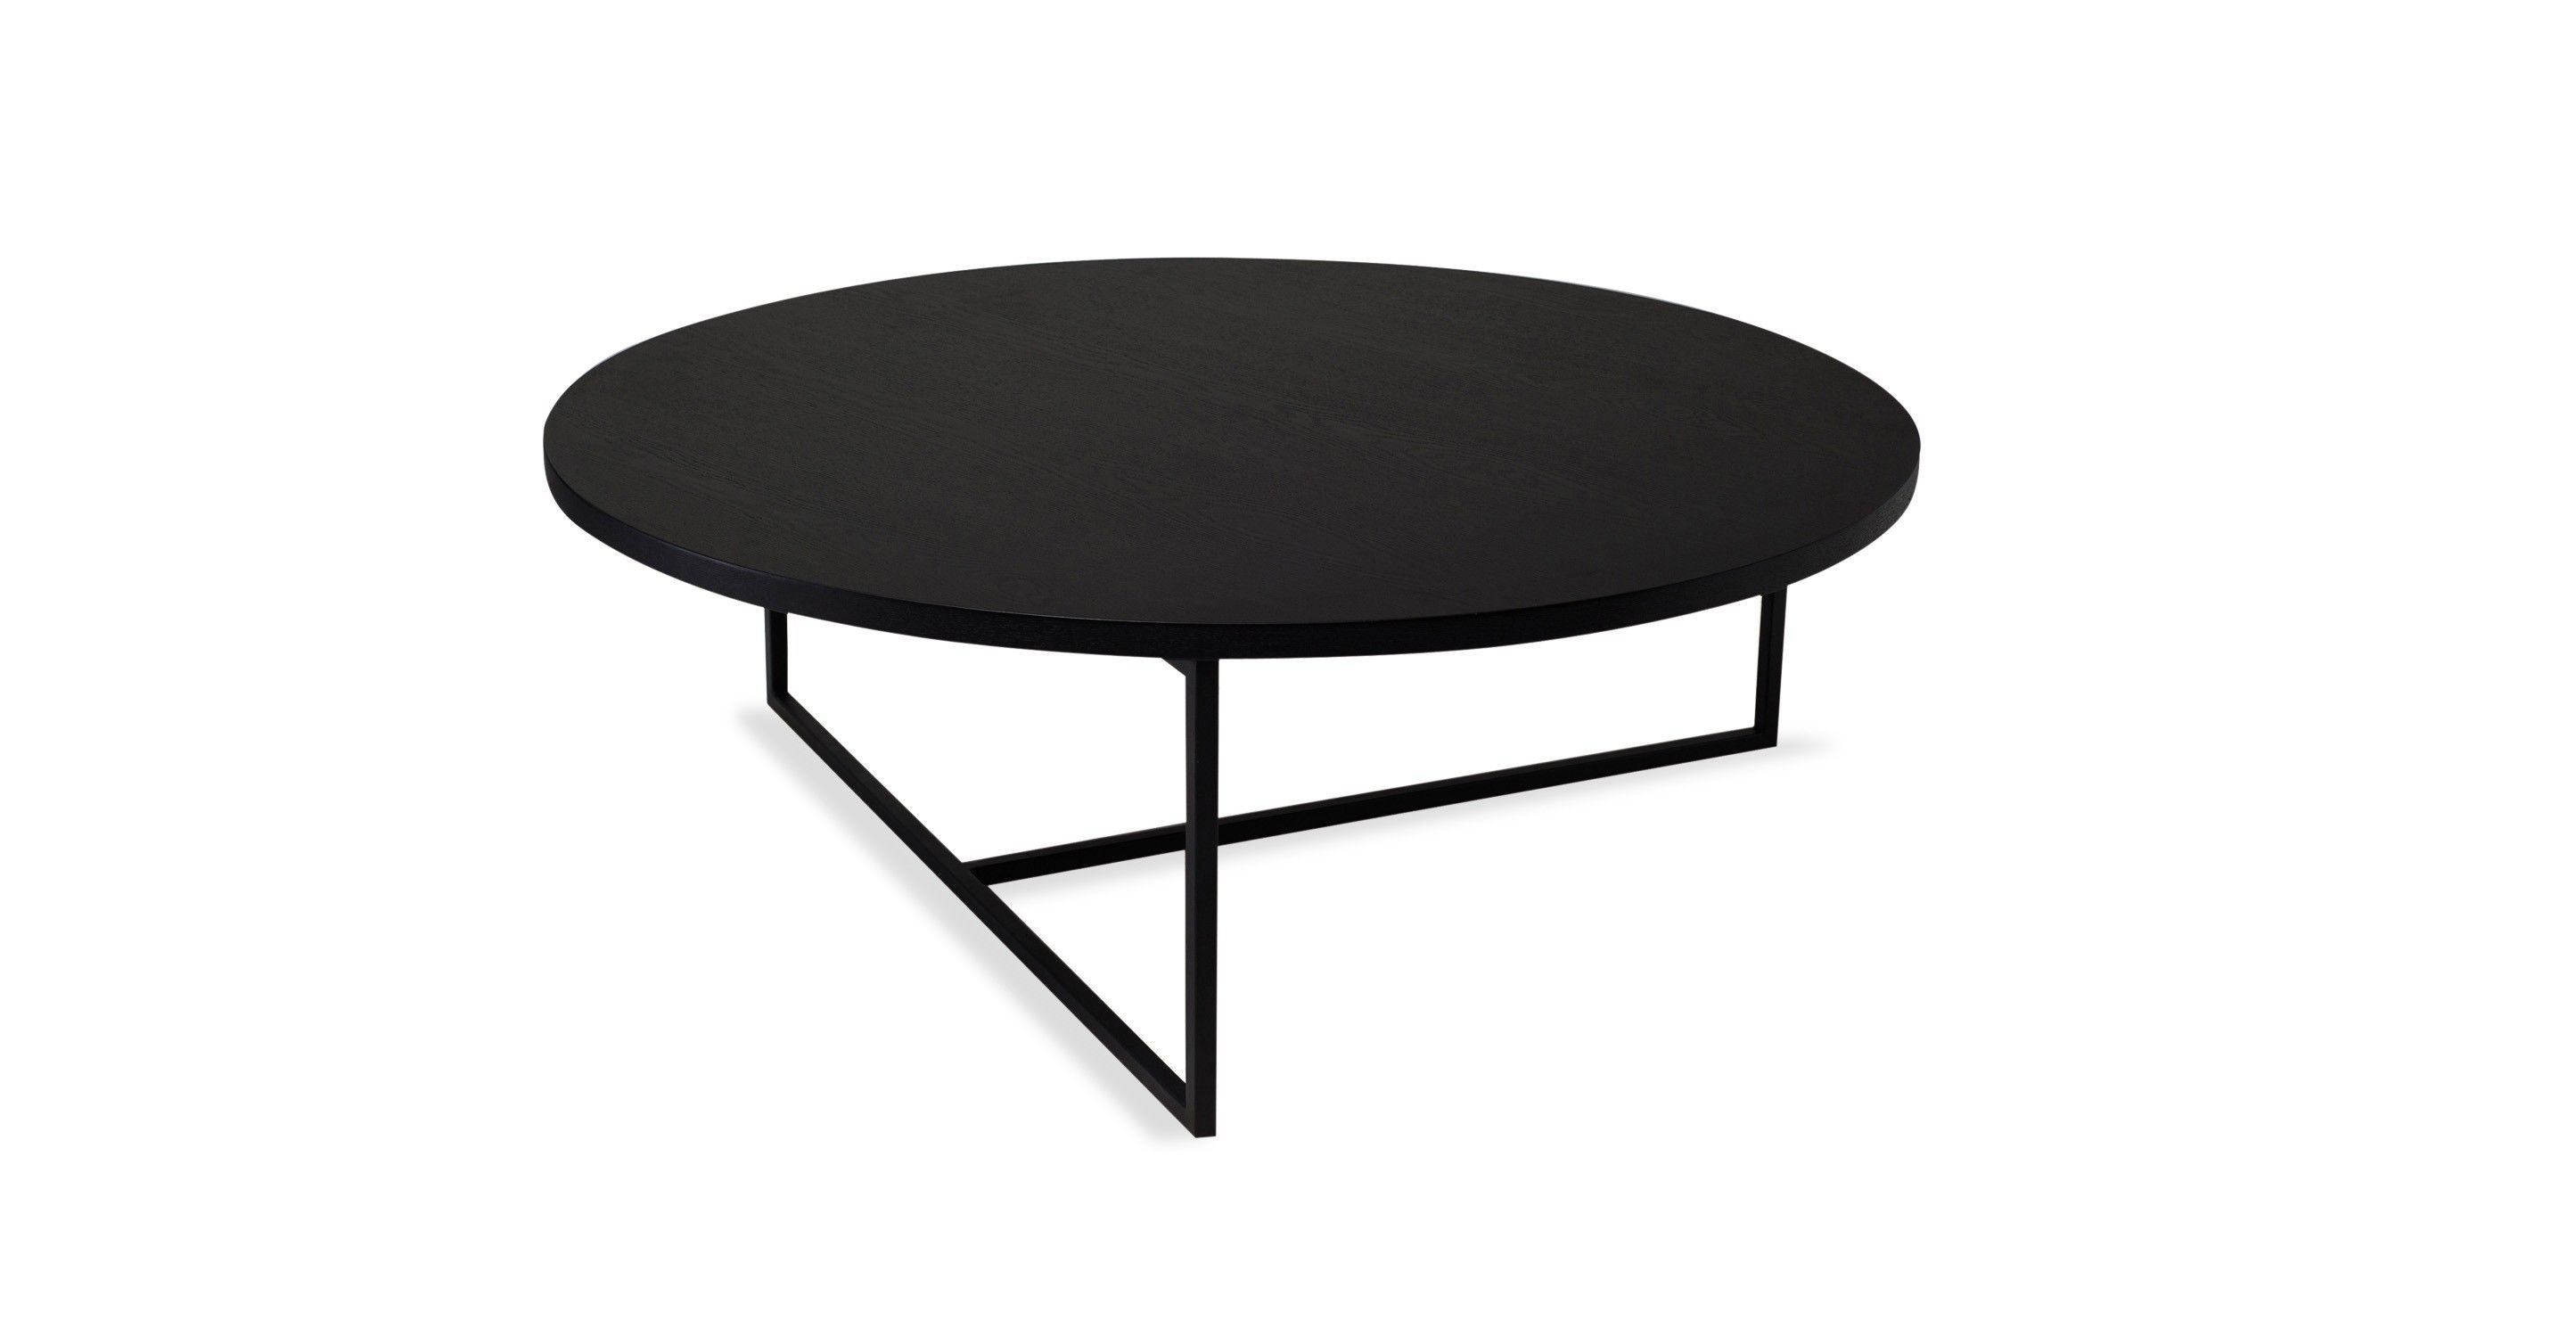 Turner Black Round Coffee Table Coffee Tables Bryght Modern Mid Century And Scand Coffee Table Round Coffee Table Modern Mid Century Modern Coffee Table